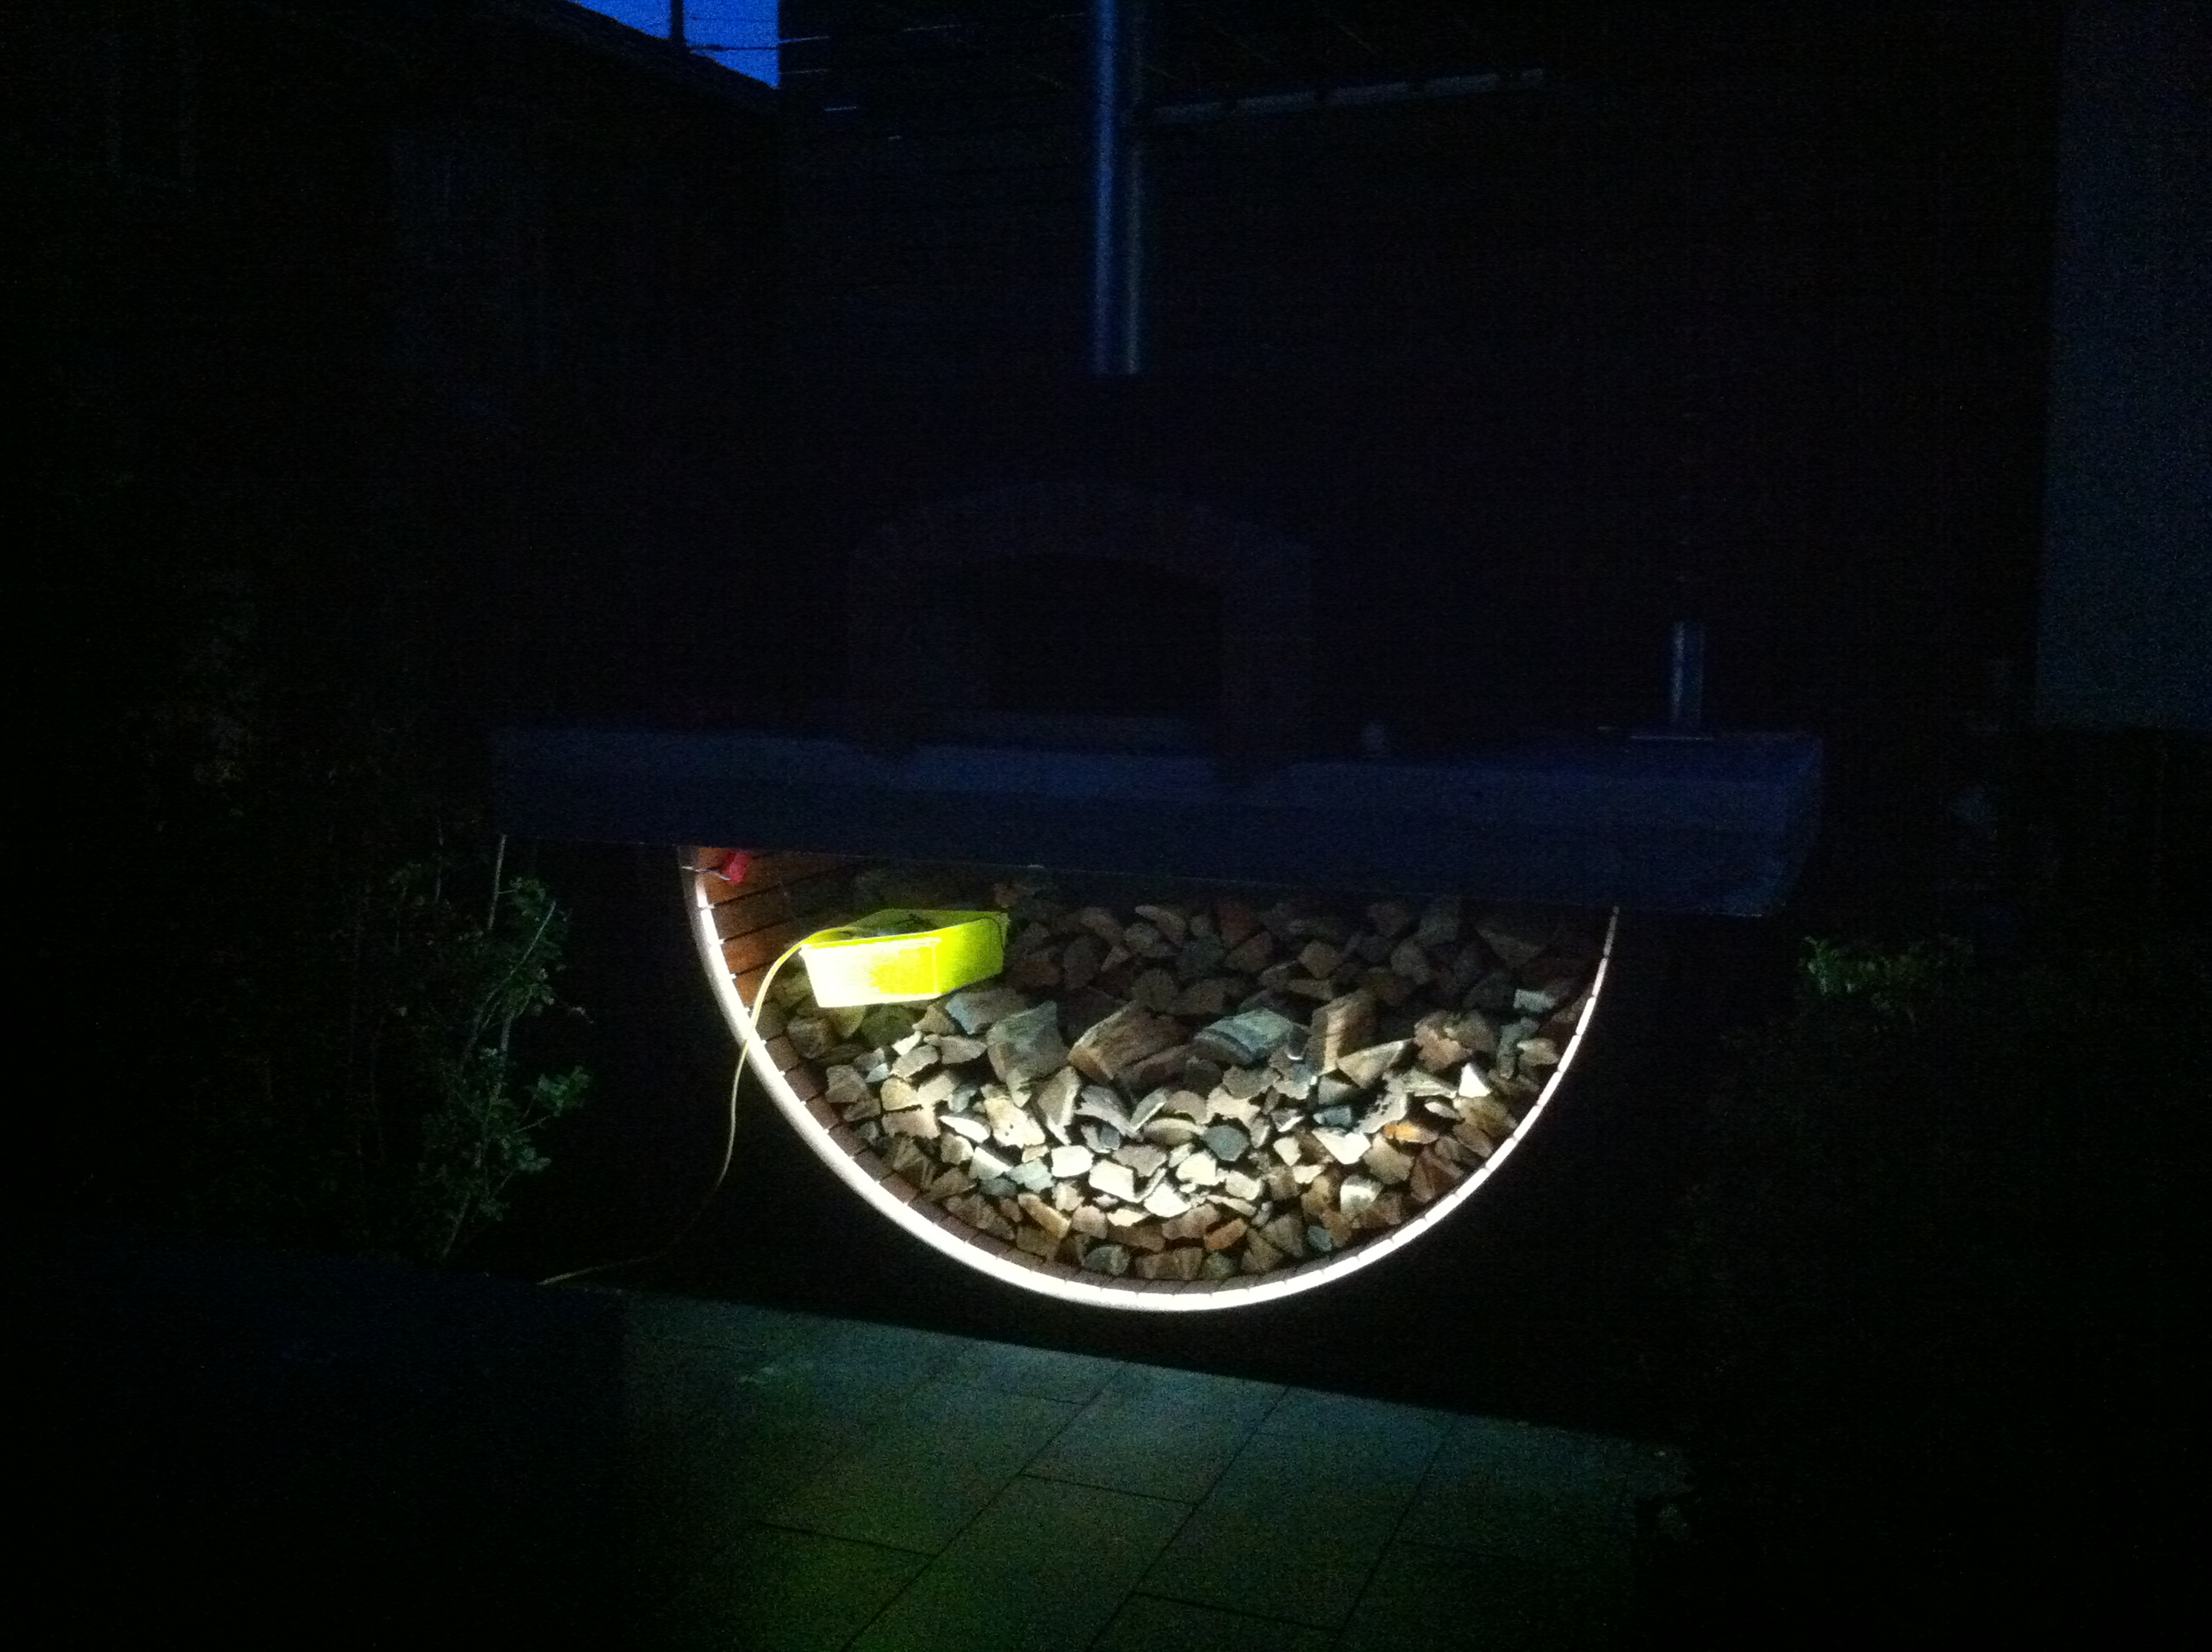 Georgeshall custom design and bult pizza oven LED